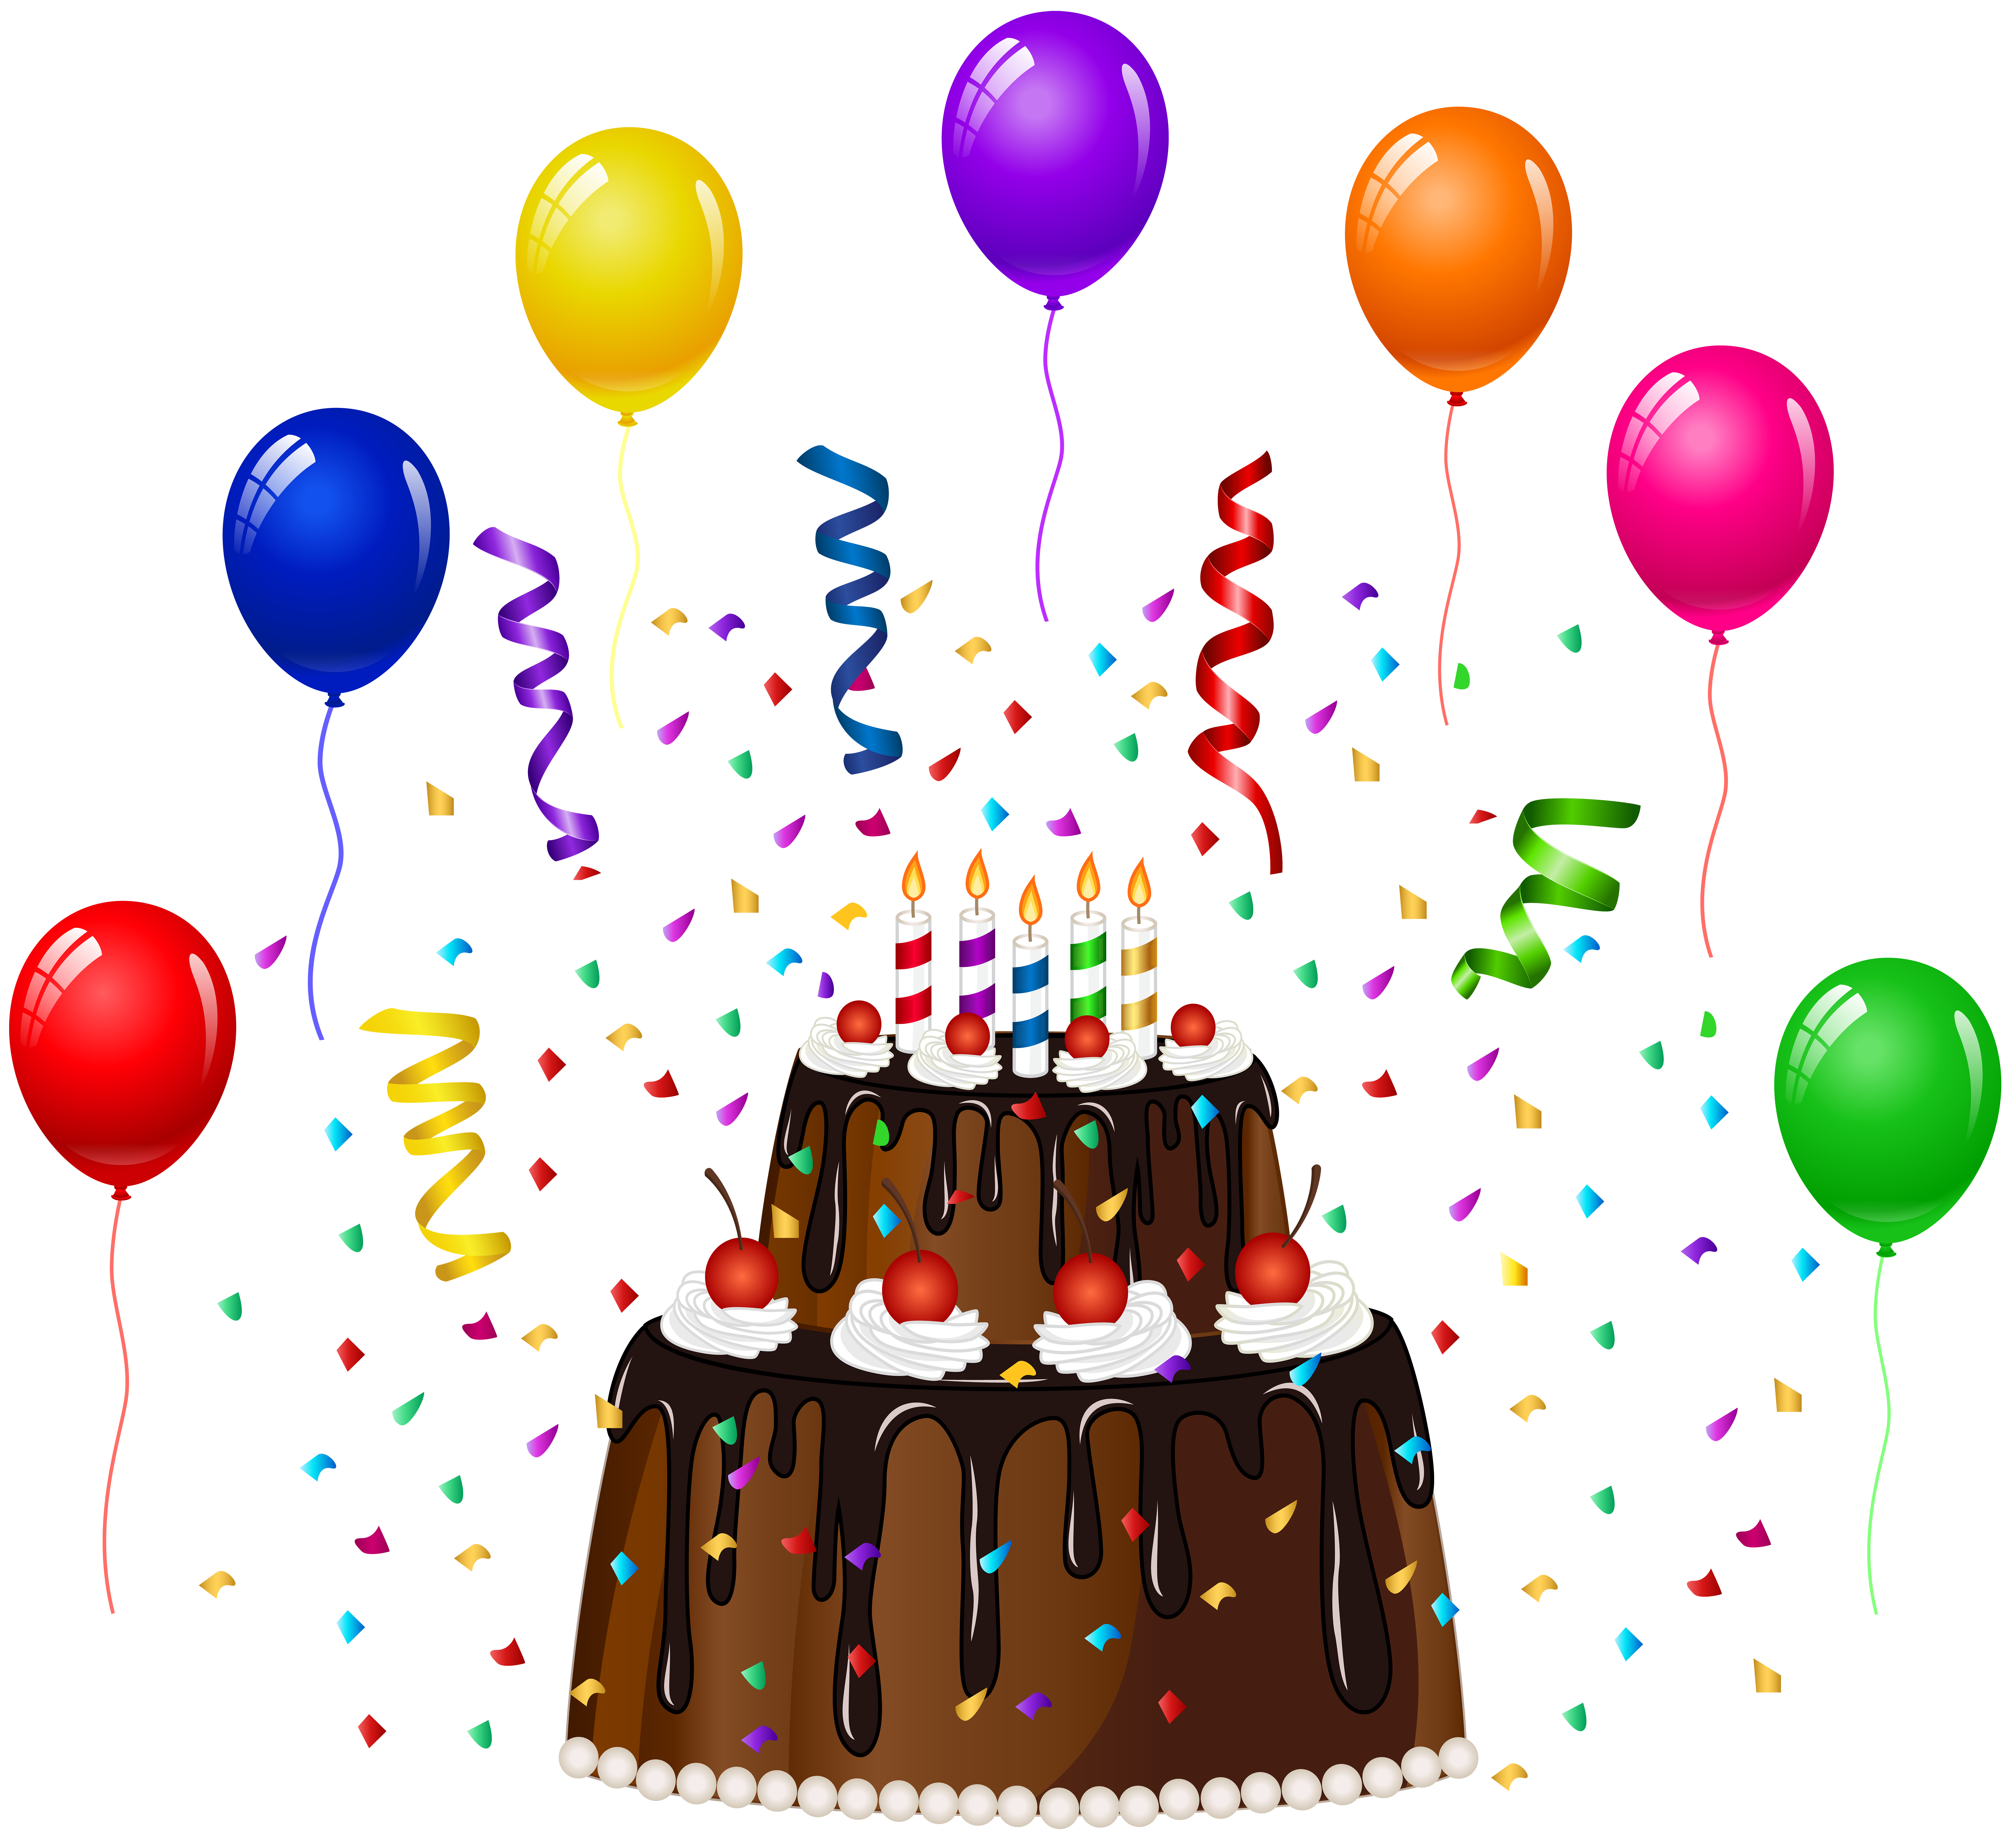 Birthday cake with confetti. Tired clipart lack energy